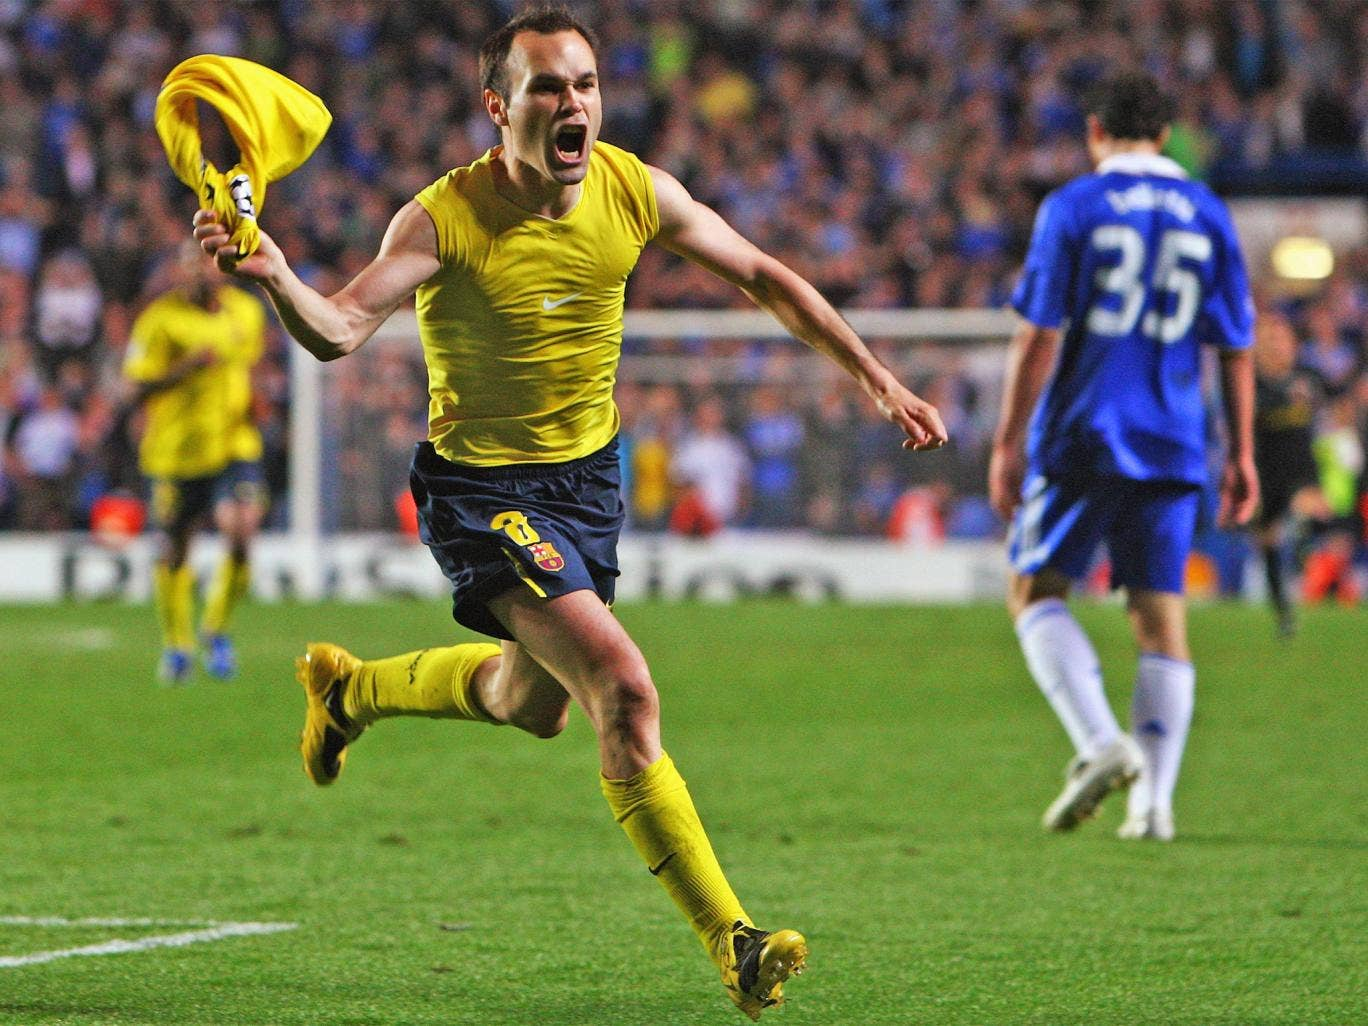 Andres Iniesta's last-minute goal against Chelsea in 2009 sent Barcelona through to the final